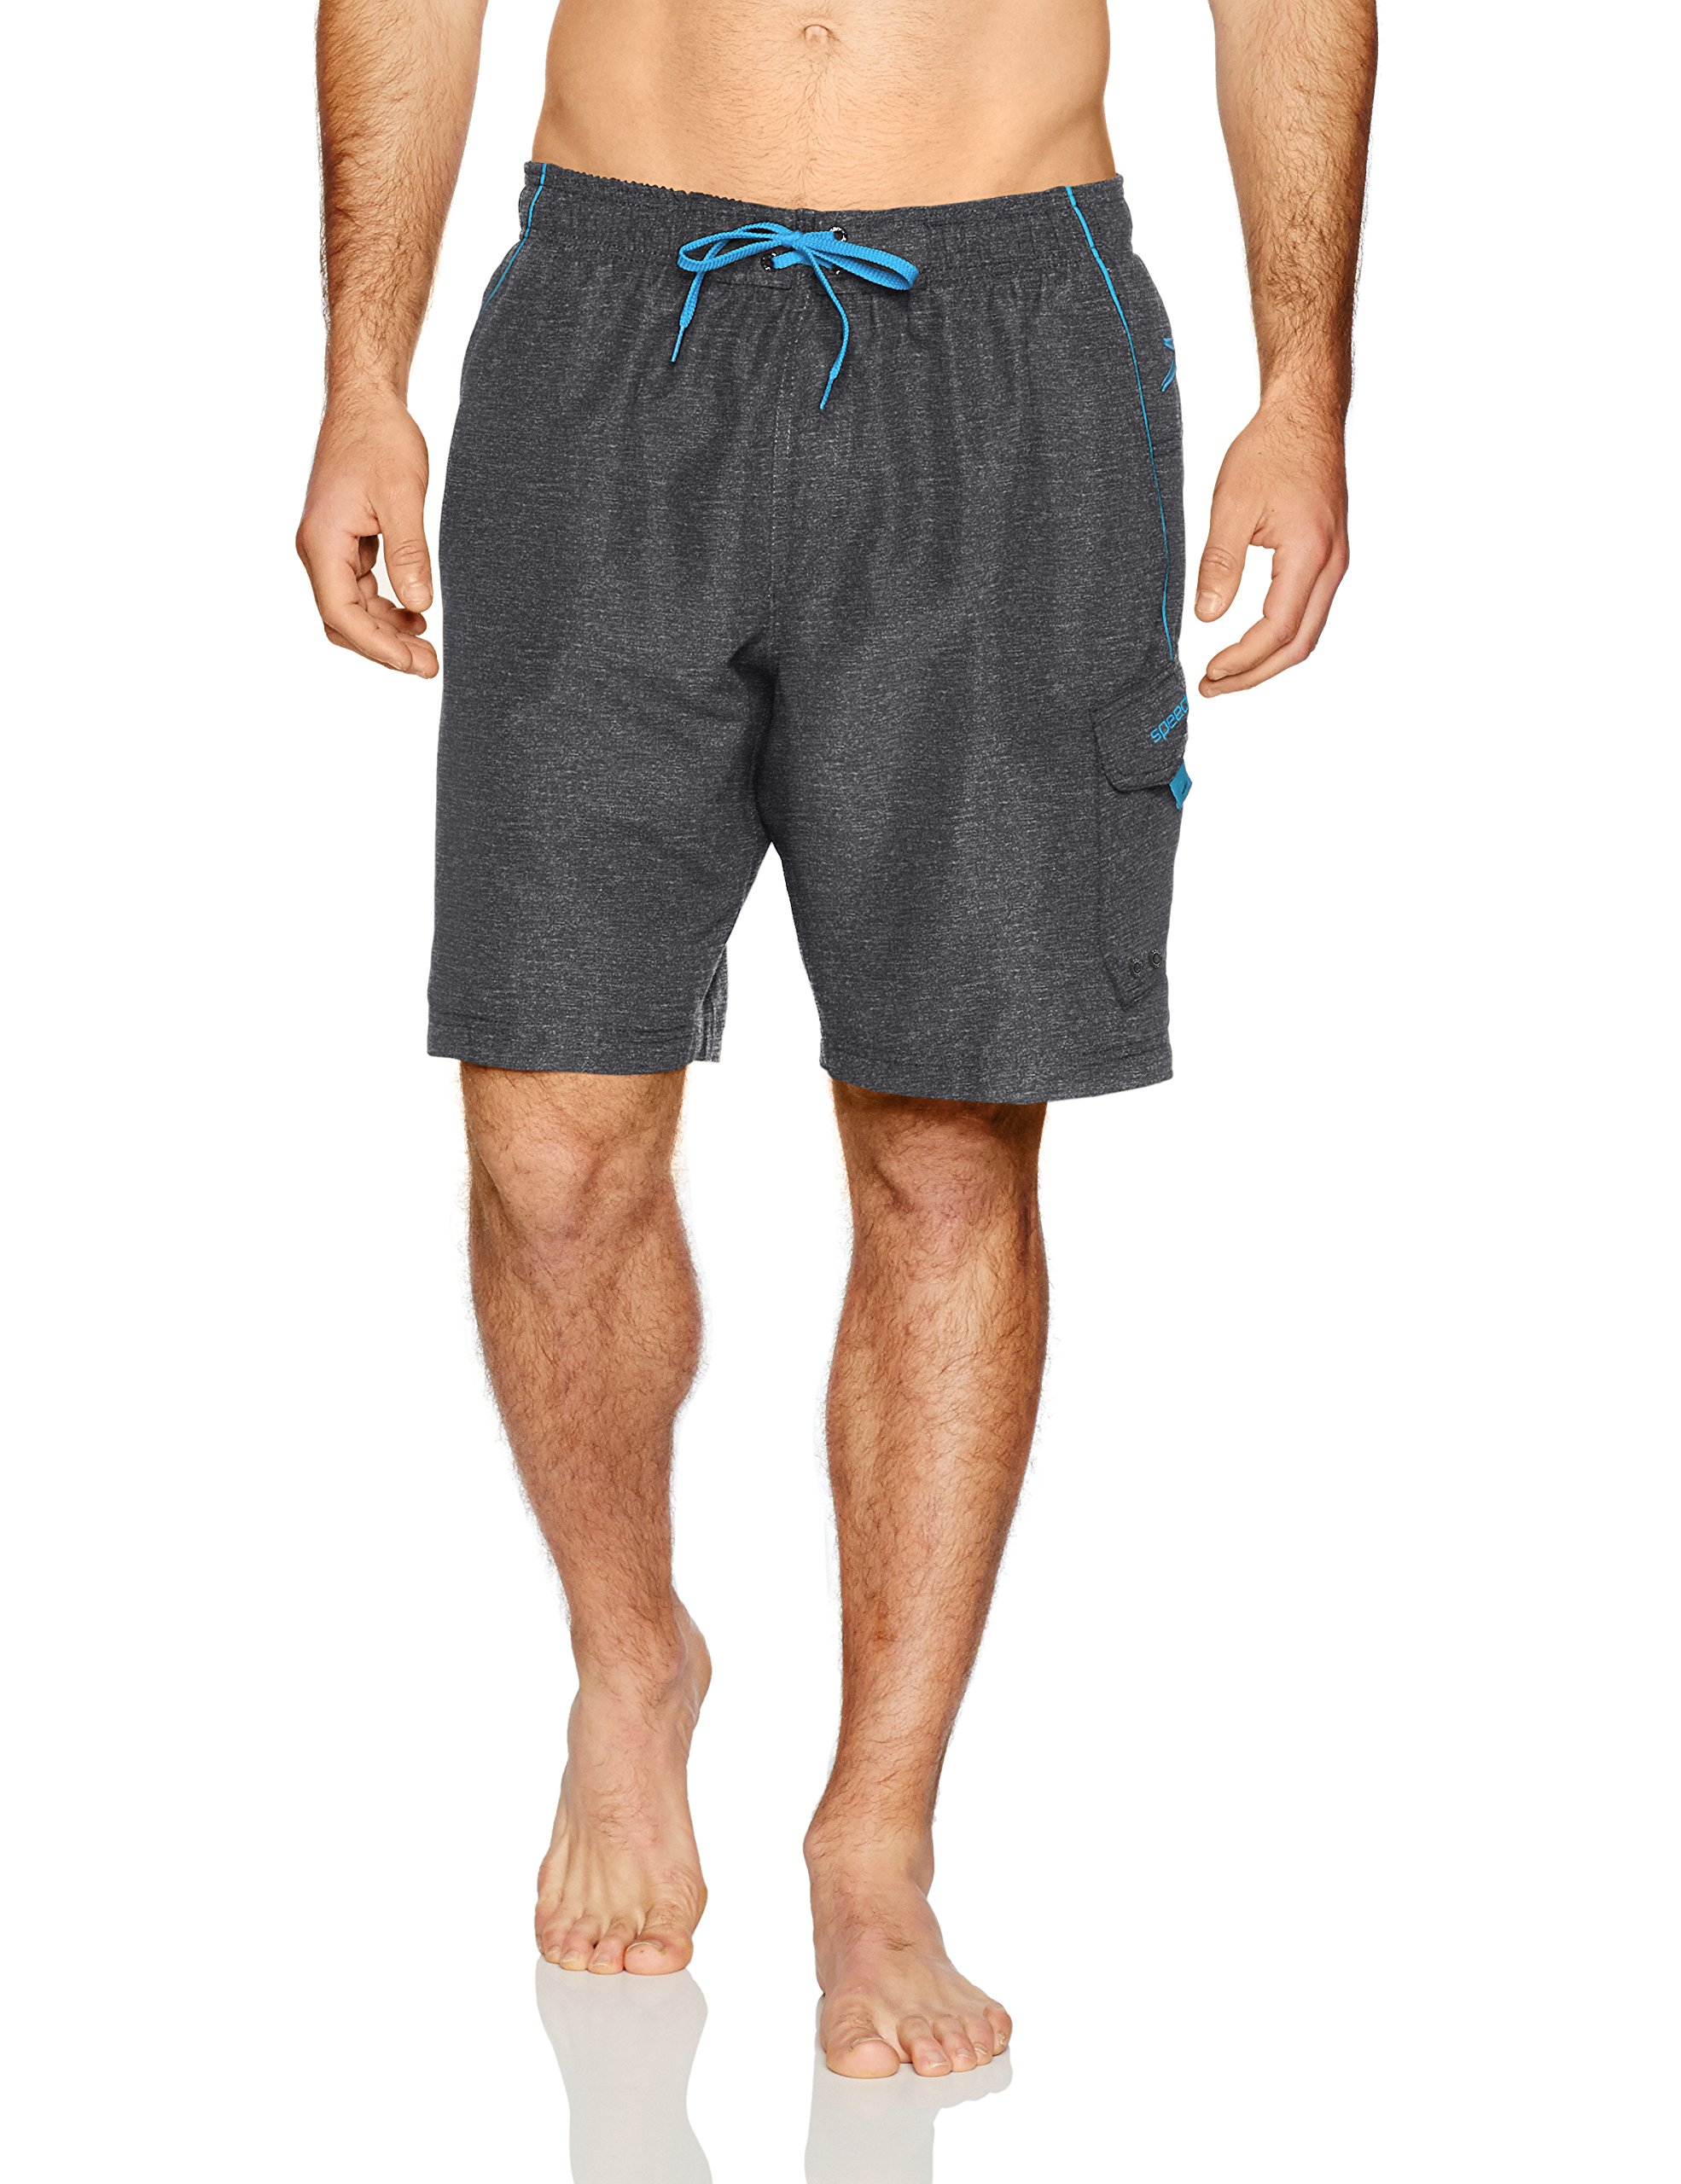 984acd82b9 Best Rated in Men's Swim Trunks & Helpful Customer Reviews - Amazon.com